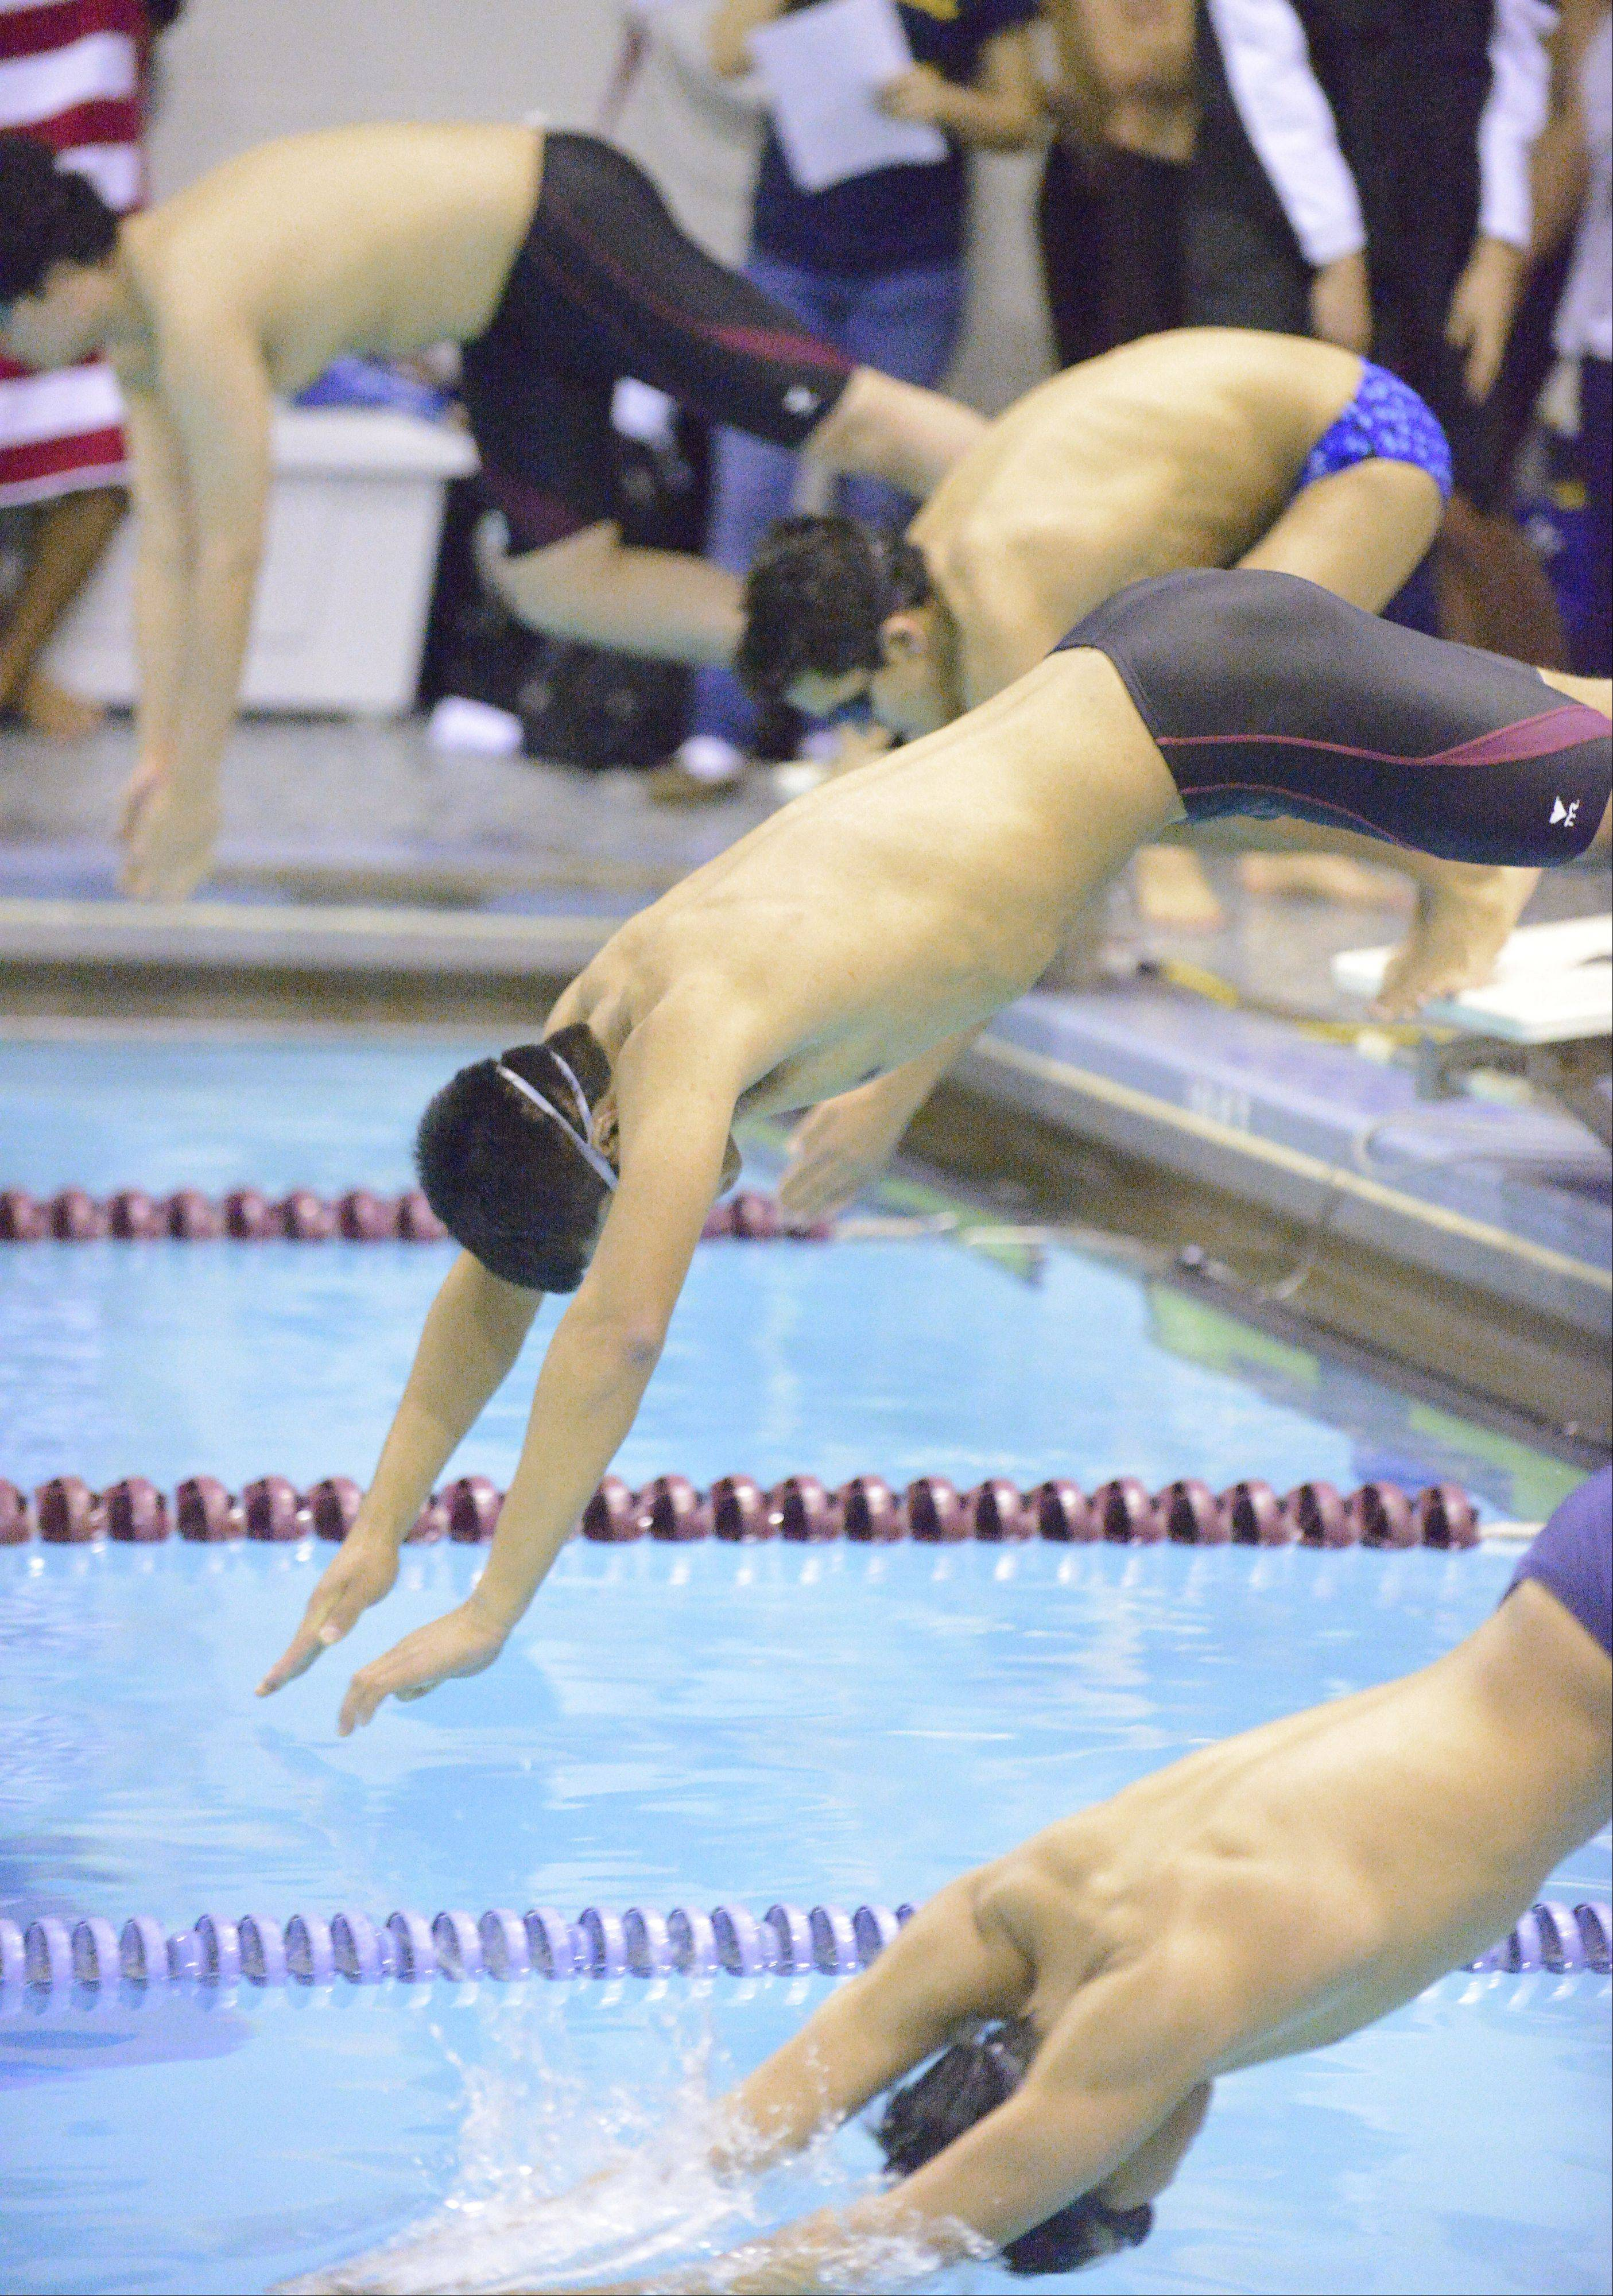 Eduardo Perez, a Elgin High School senior, has accepted a four-year full scholarship to Stanford University. He is among a few seniors who this year were instrumental in bringing a boys swim team back to Elgin High.